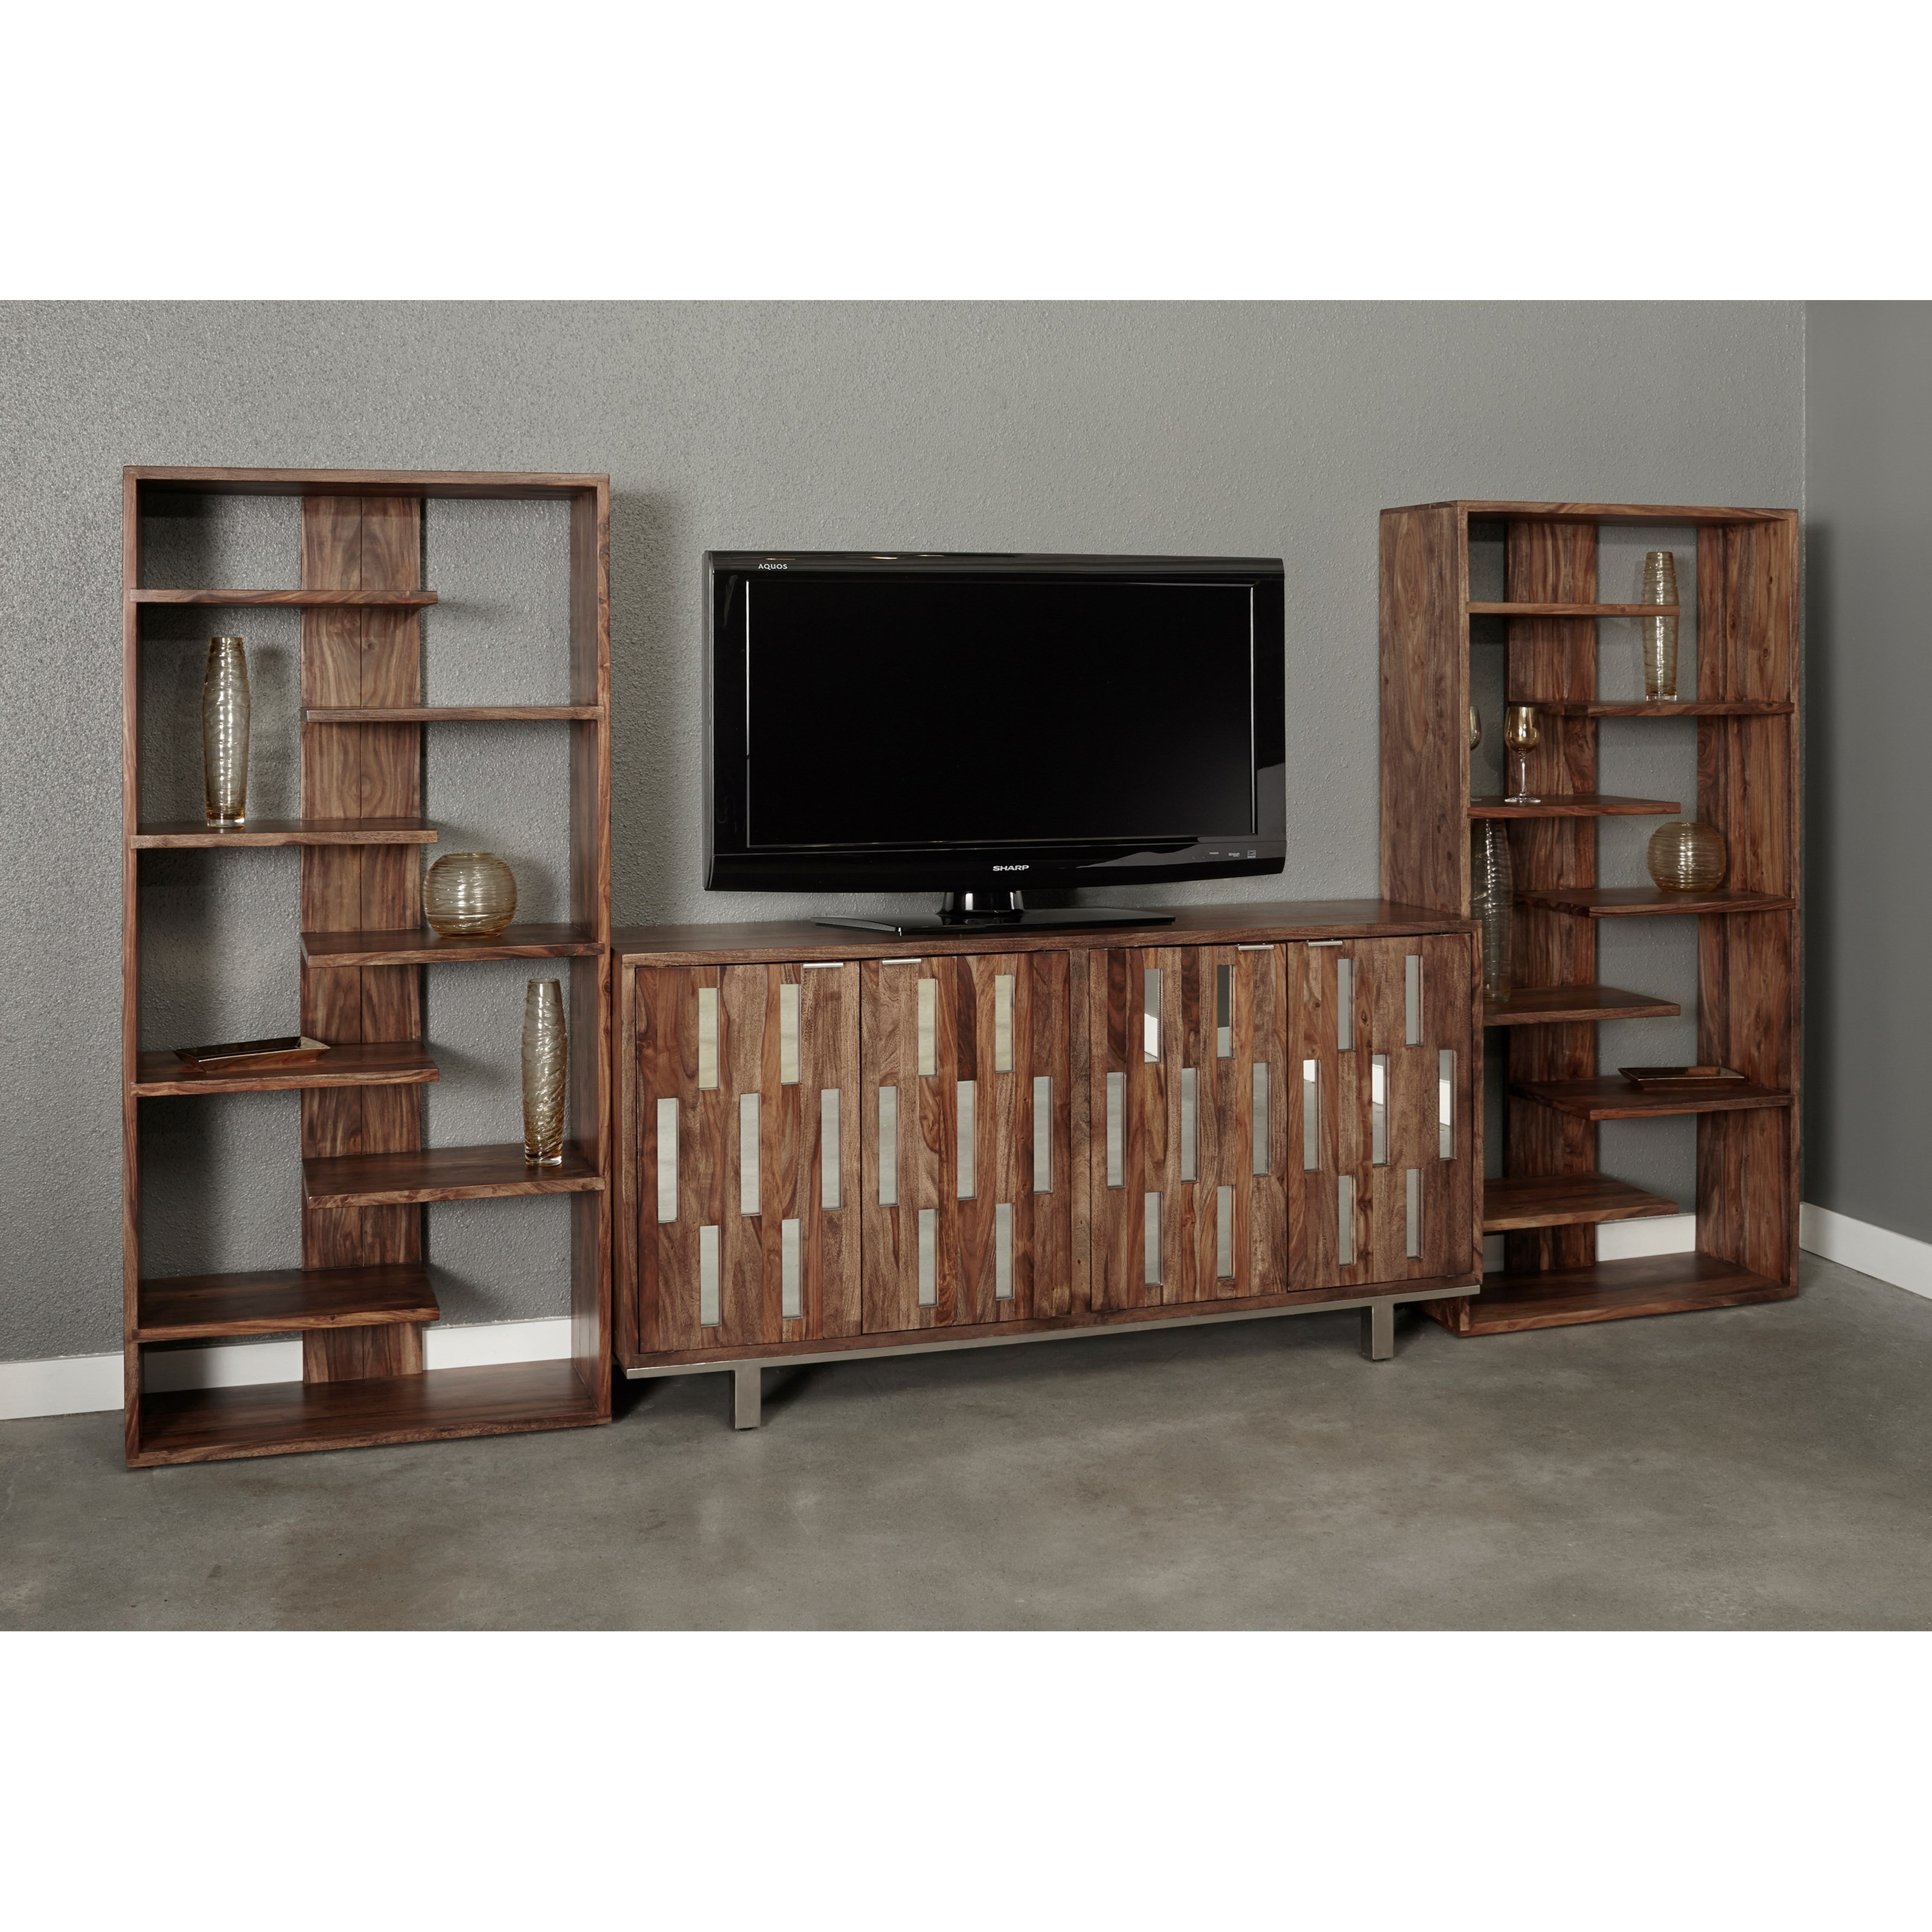 Brownstone TV Wall Unit by Coast to Coast Imports at Zak's Home